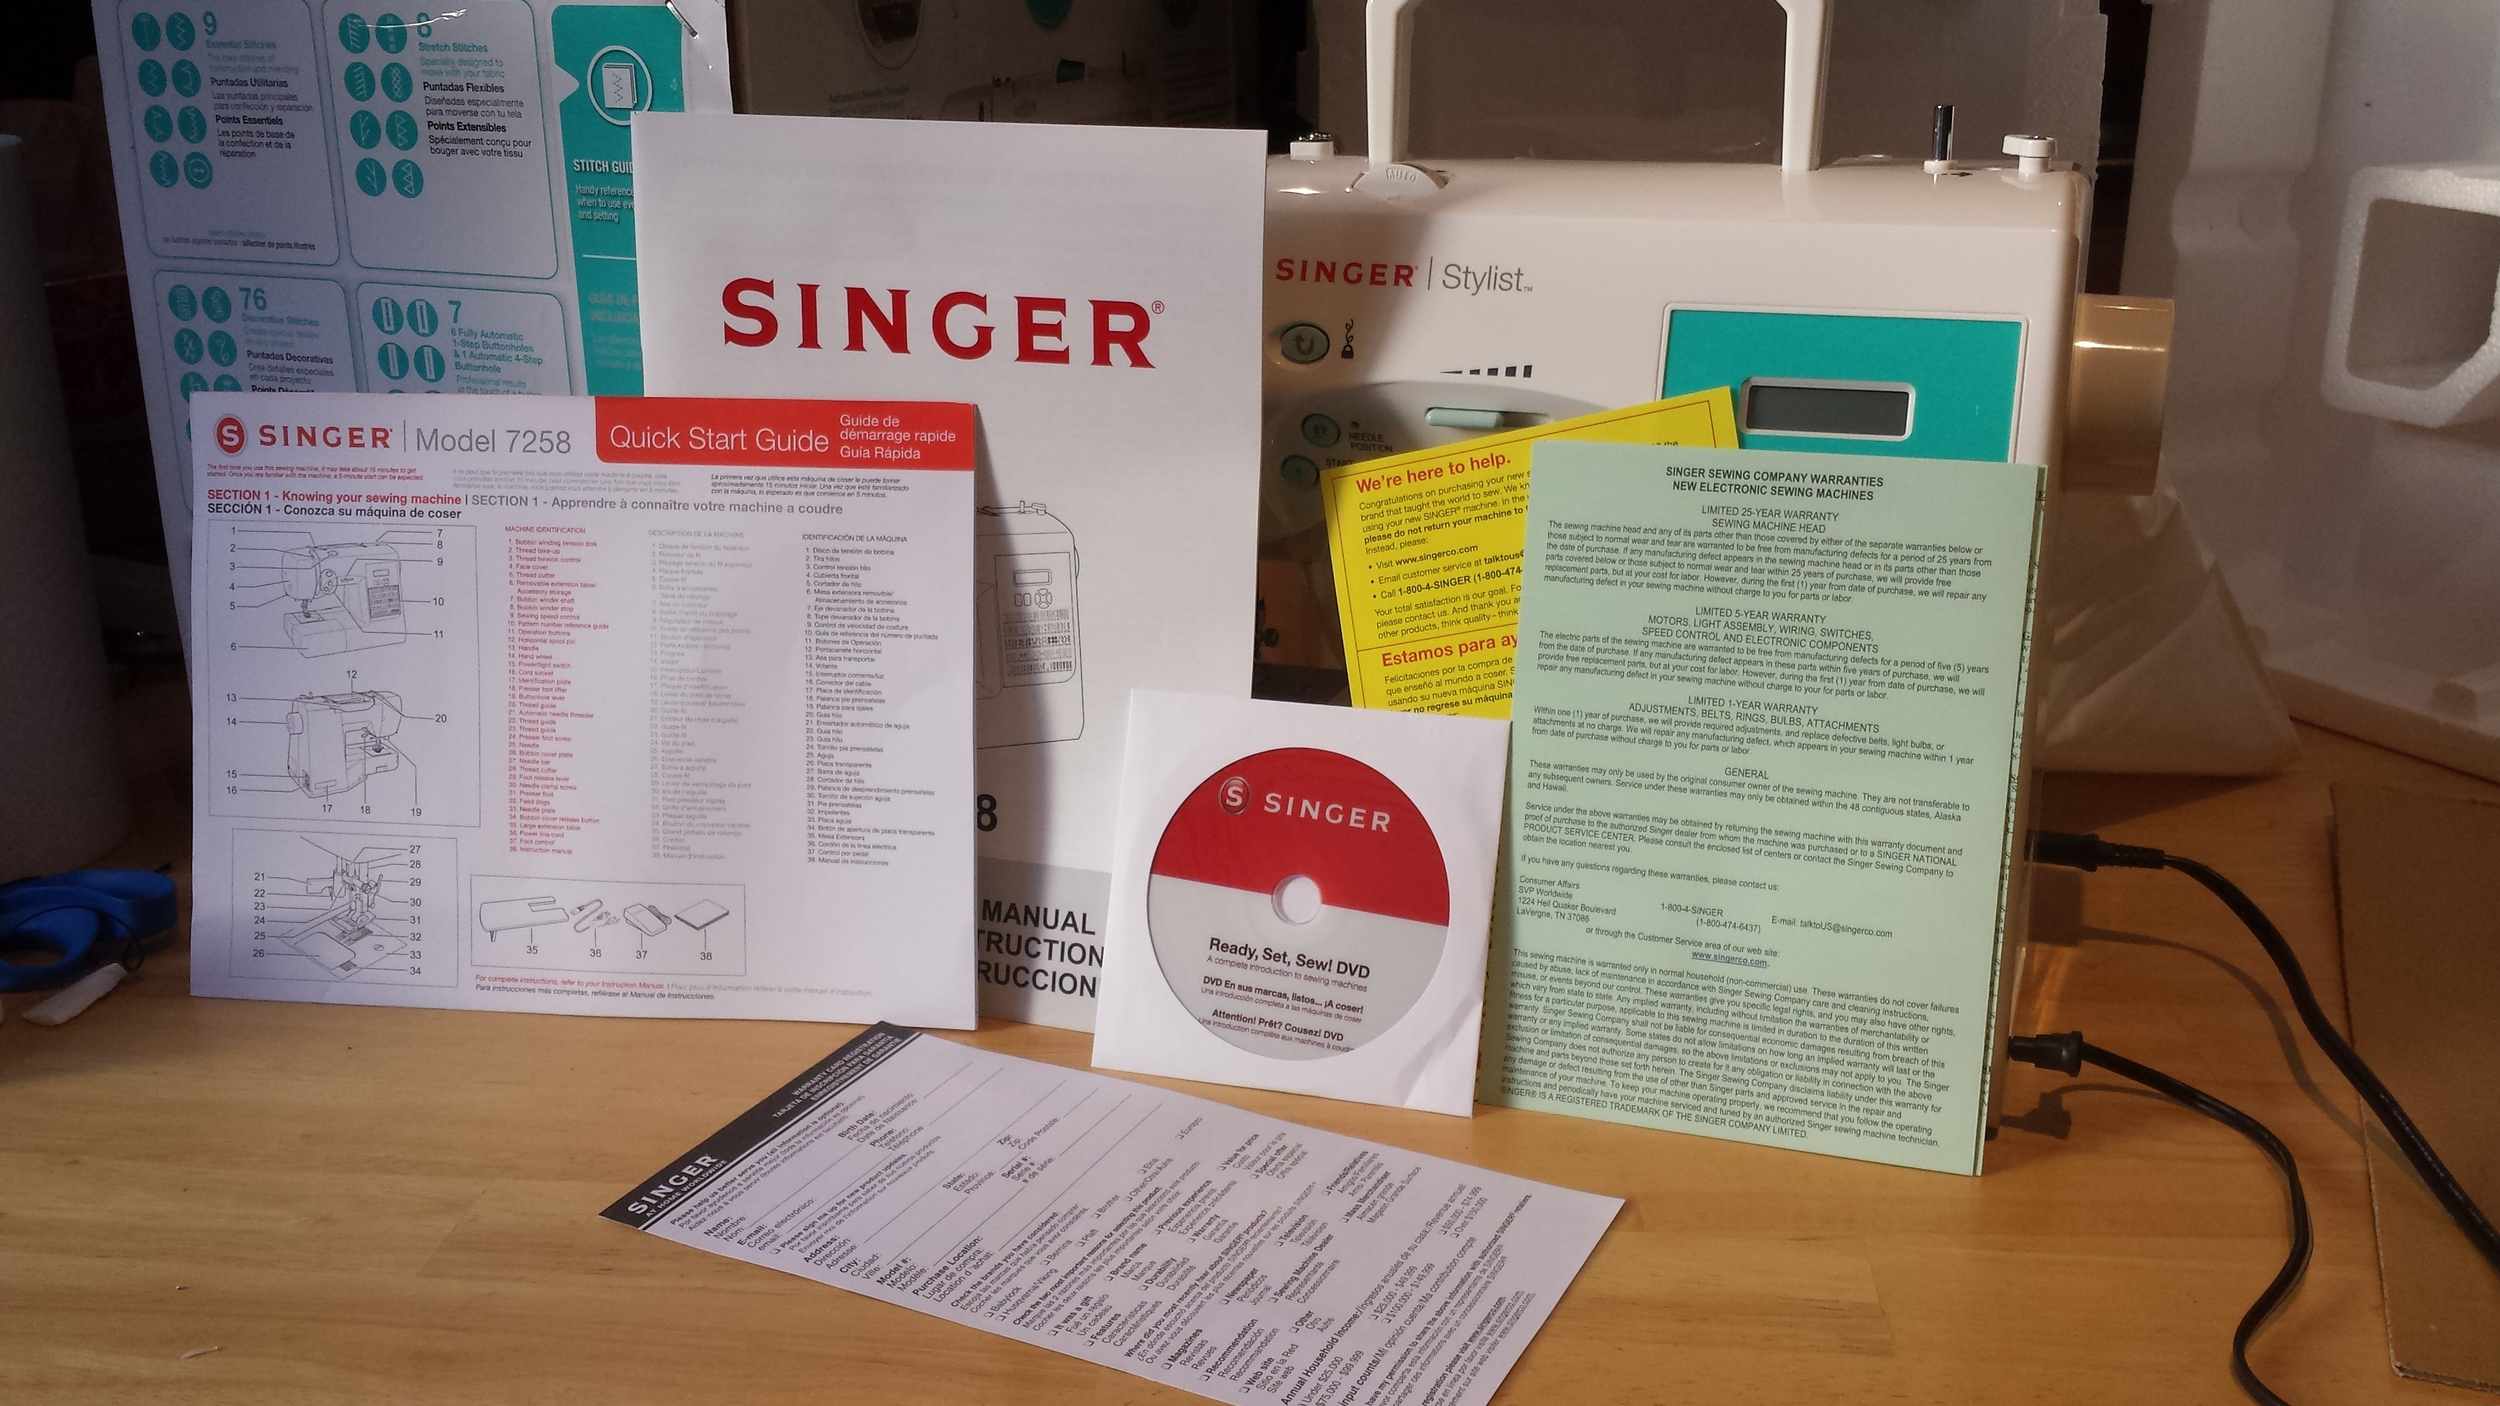 All of the paperwork that comes with the Singer 7258 sewing machine